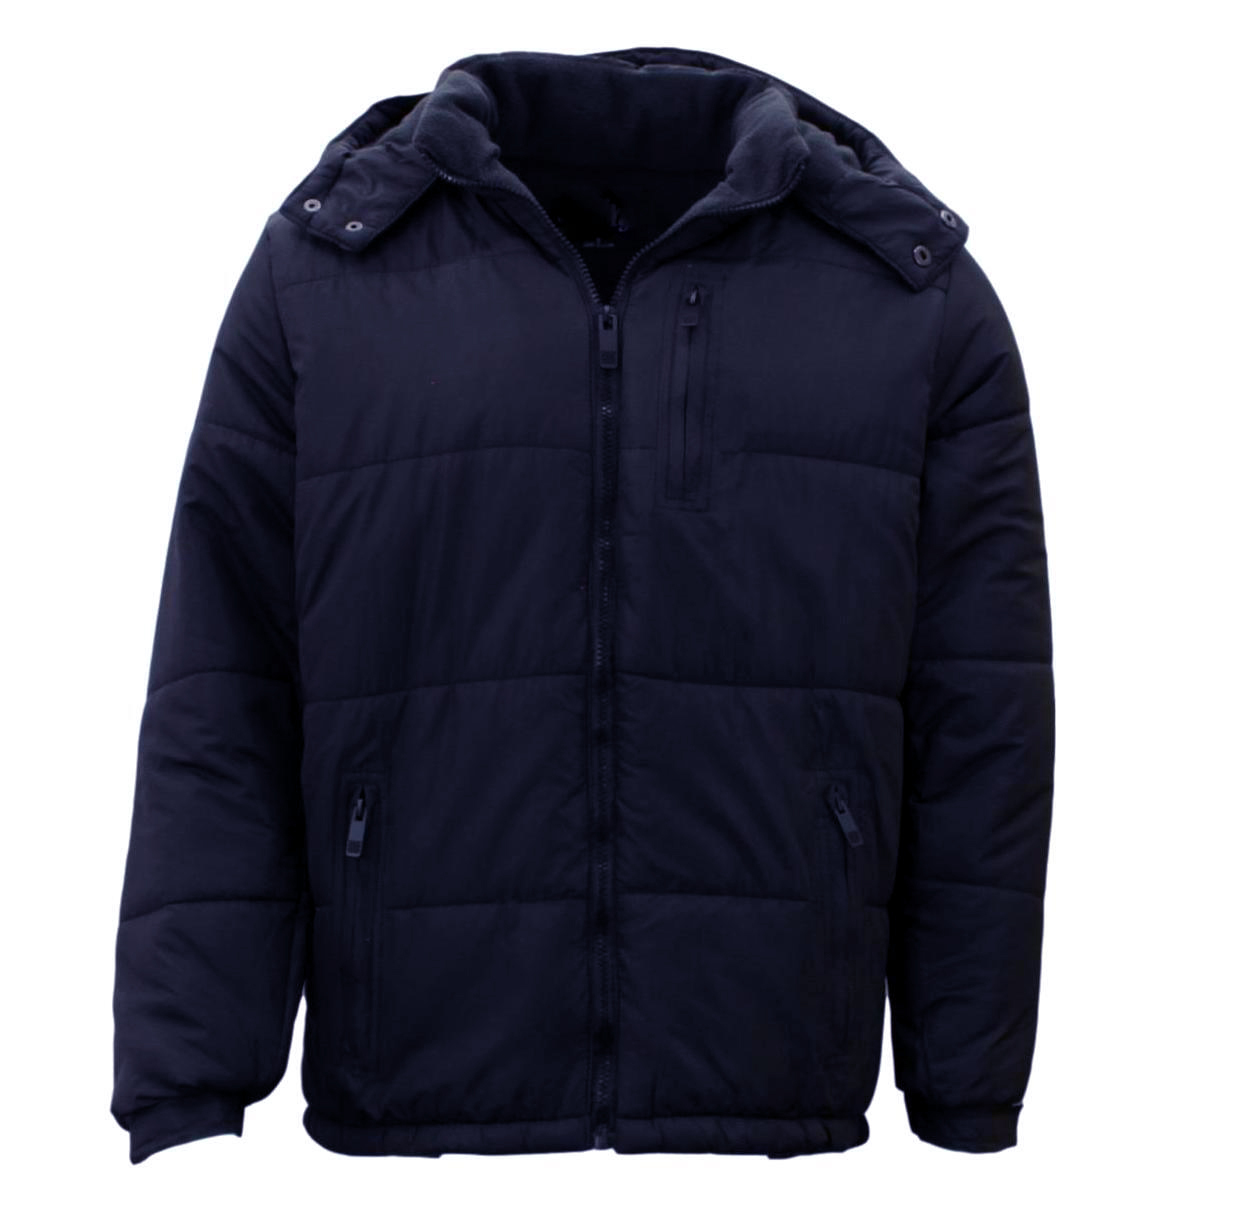 Stitch-Dodge-Mens-Parka-Puffer-Jacket-Quilted-Detachable-Hoodie-Puffy-Padded thumbnail 11